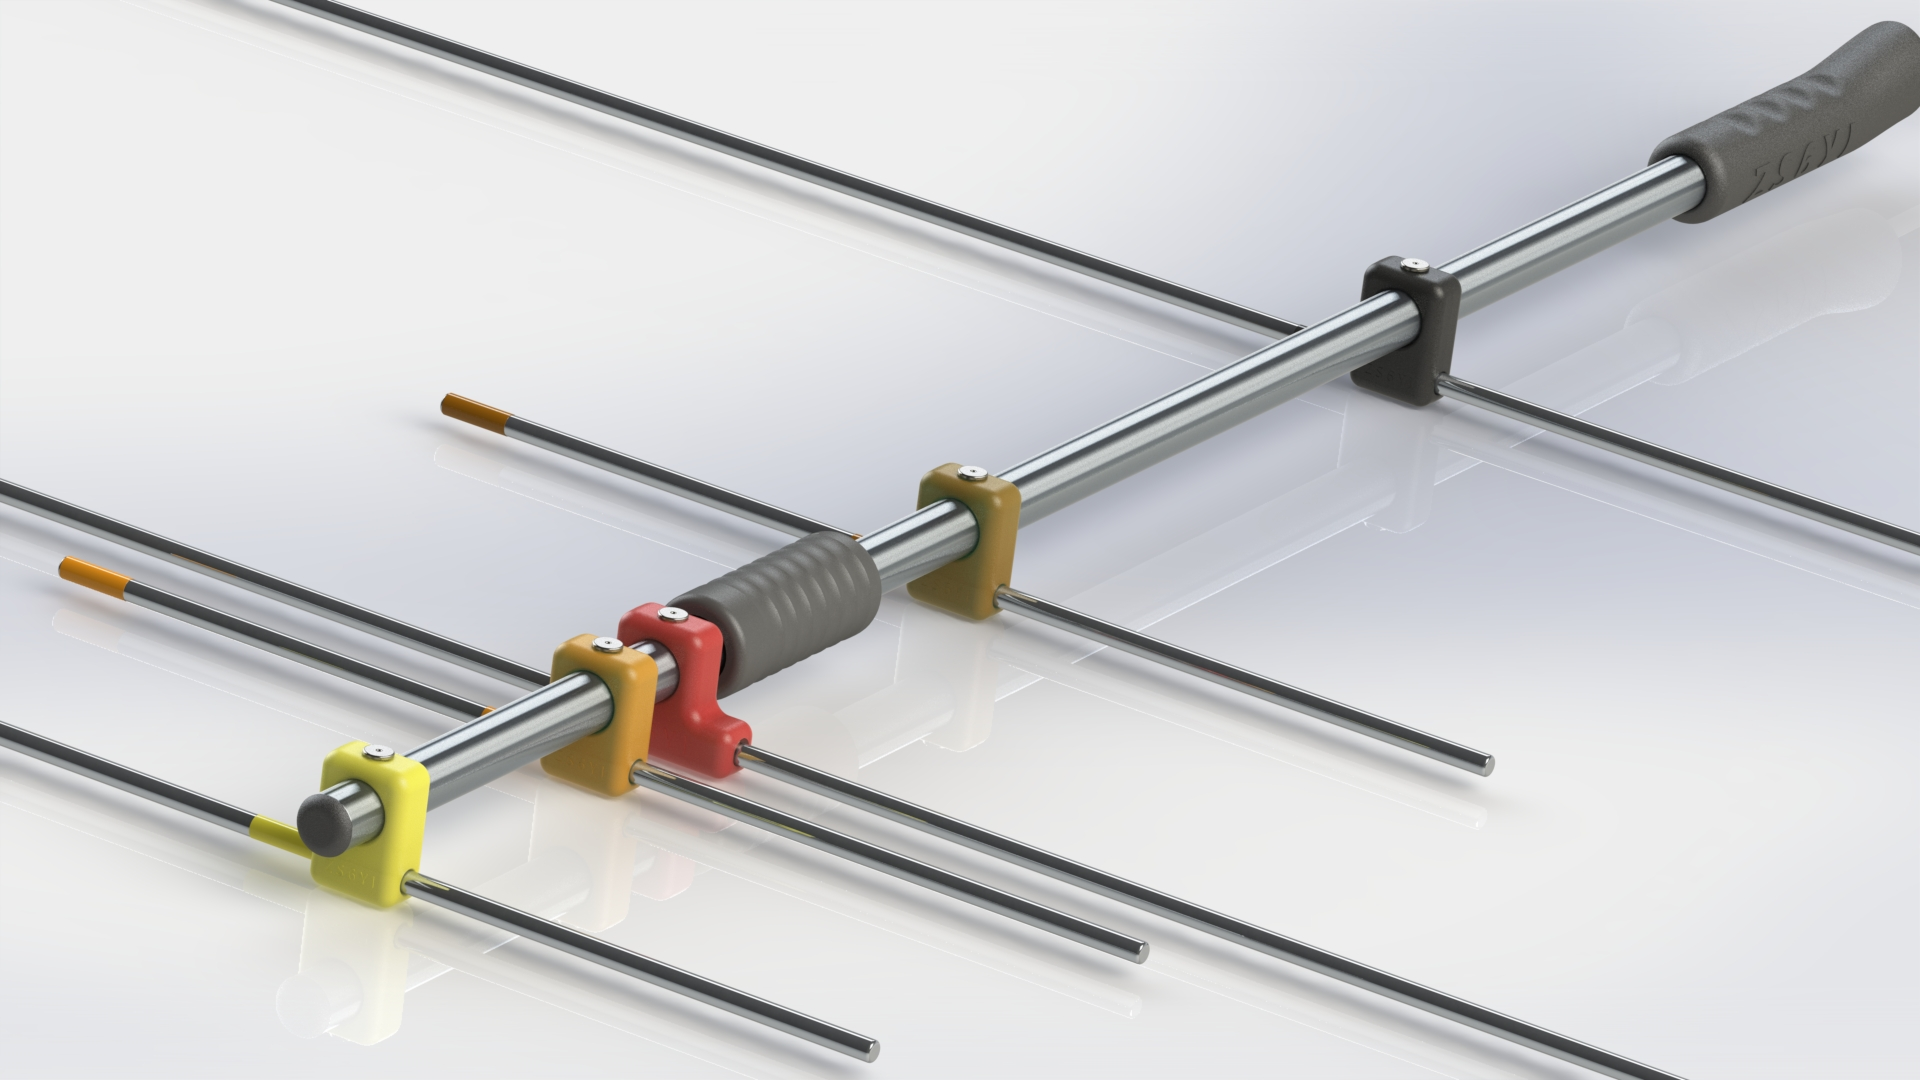 AMSAT SA 2 m / 70 cm dual-band Yagi antenna is now available